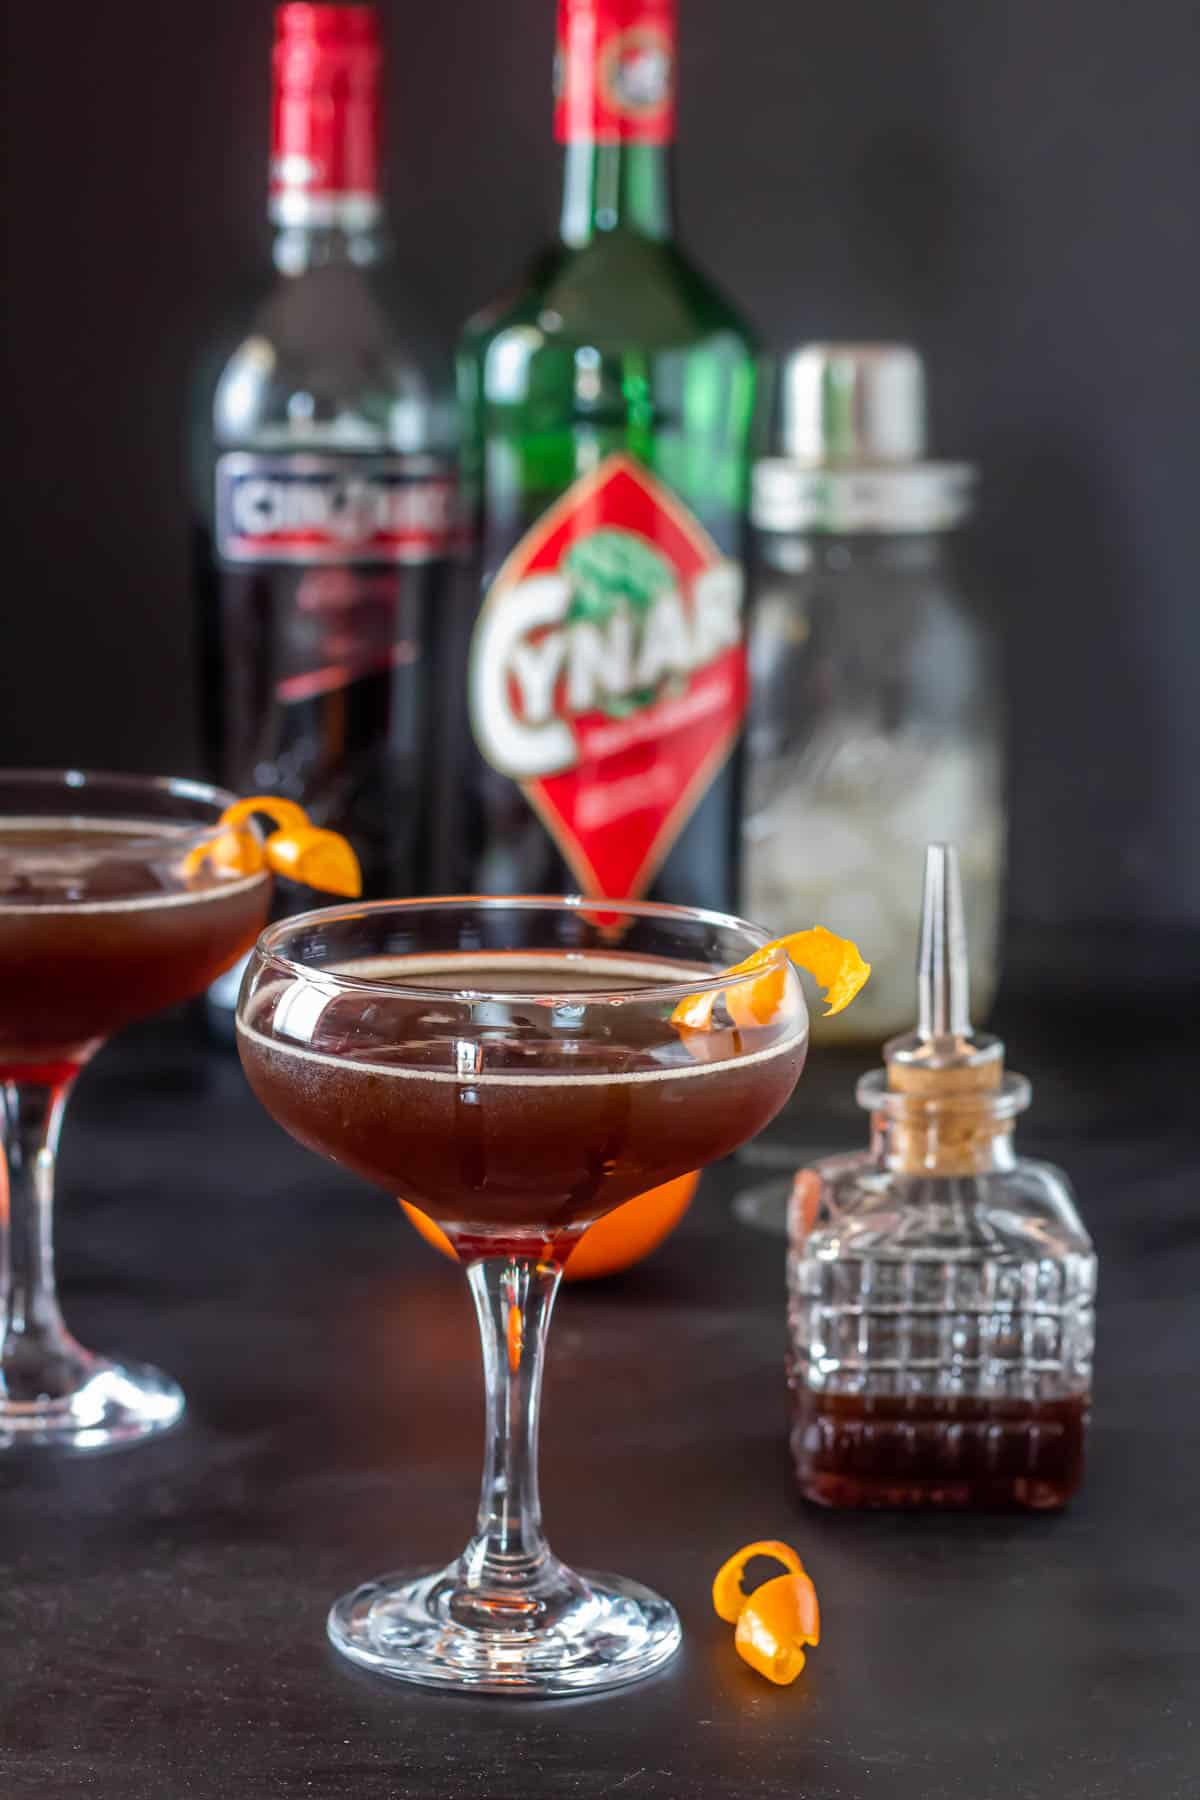 Red Vermouth and Cynar Cocktail - a dark mahogany cynar and vermouth cocktail in a coupe glass with a bottle of Cynar in the background.